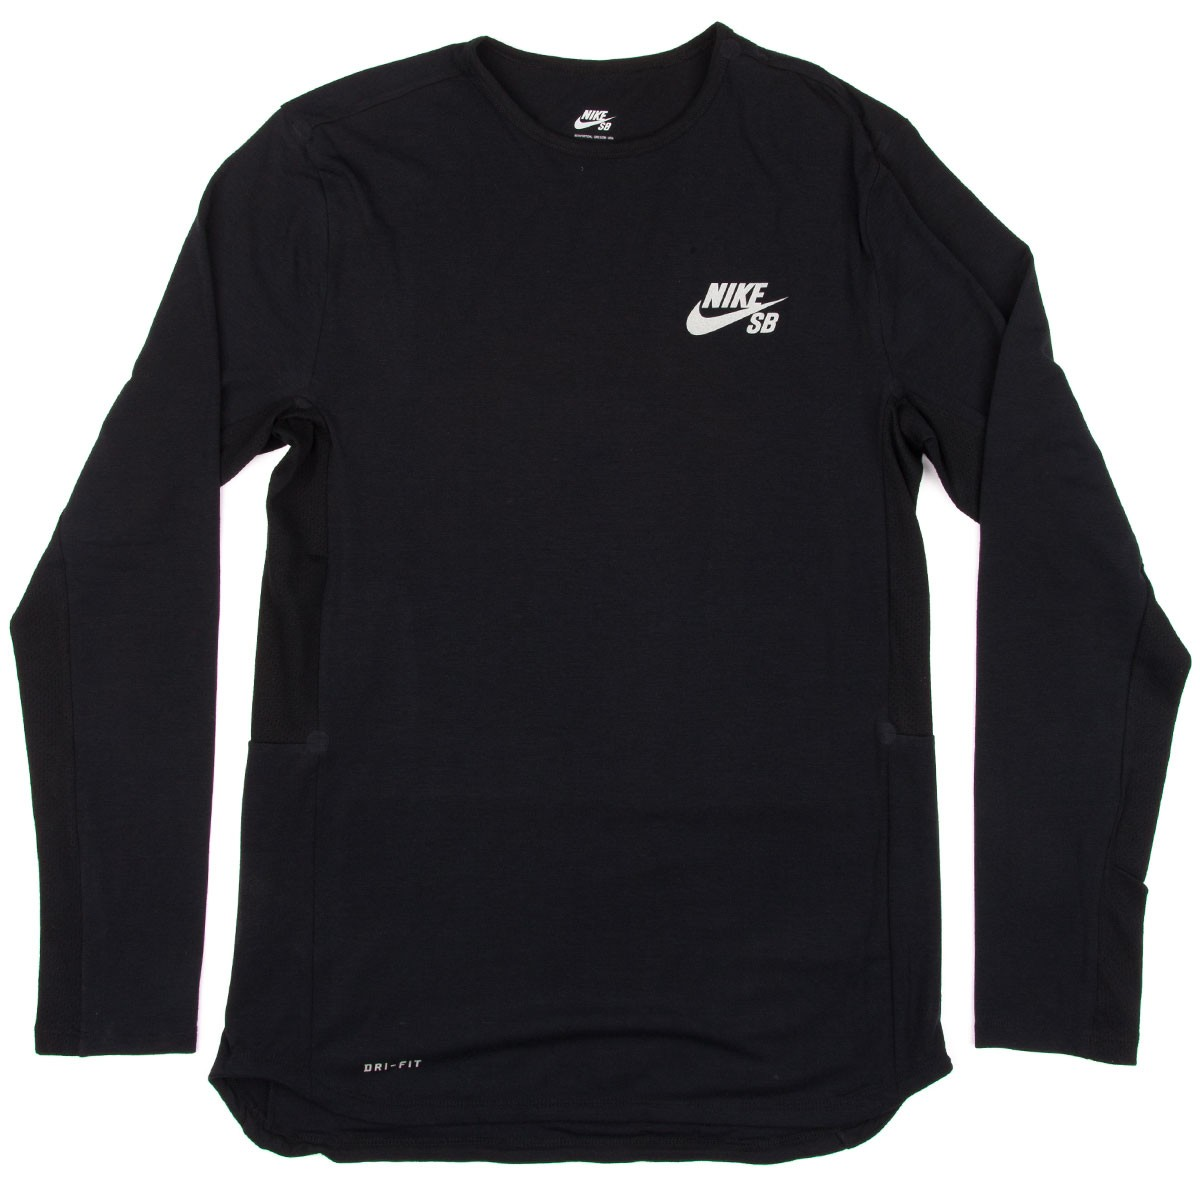 nike-sb-skyline-dri-fit-cool-long-sleeve-crew-t-shirt-black -reflective-silver-1.1506662885.jpg c0570f849e89